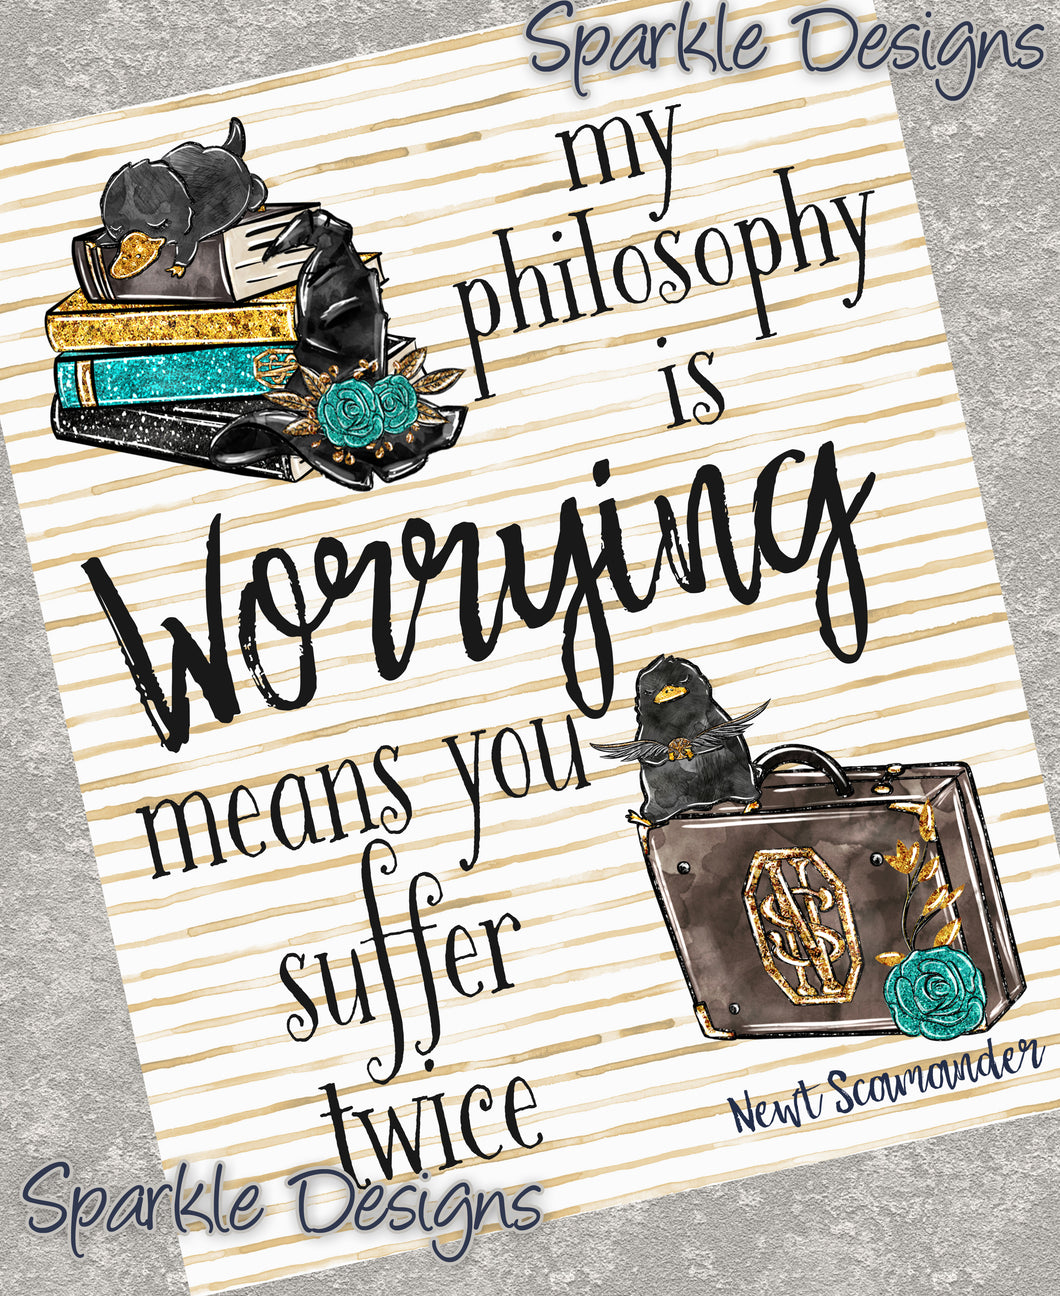 Worrying Means You Suffer Twice - Newt Scamander 201 Art Print